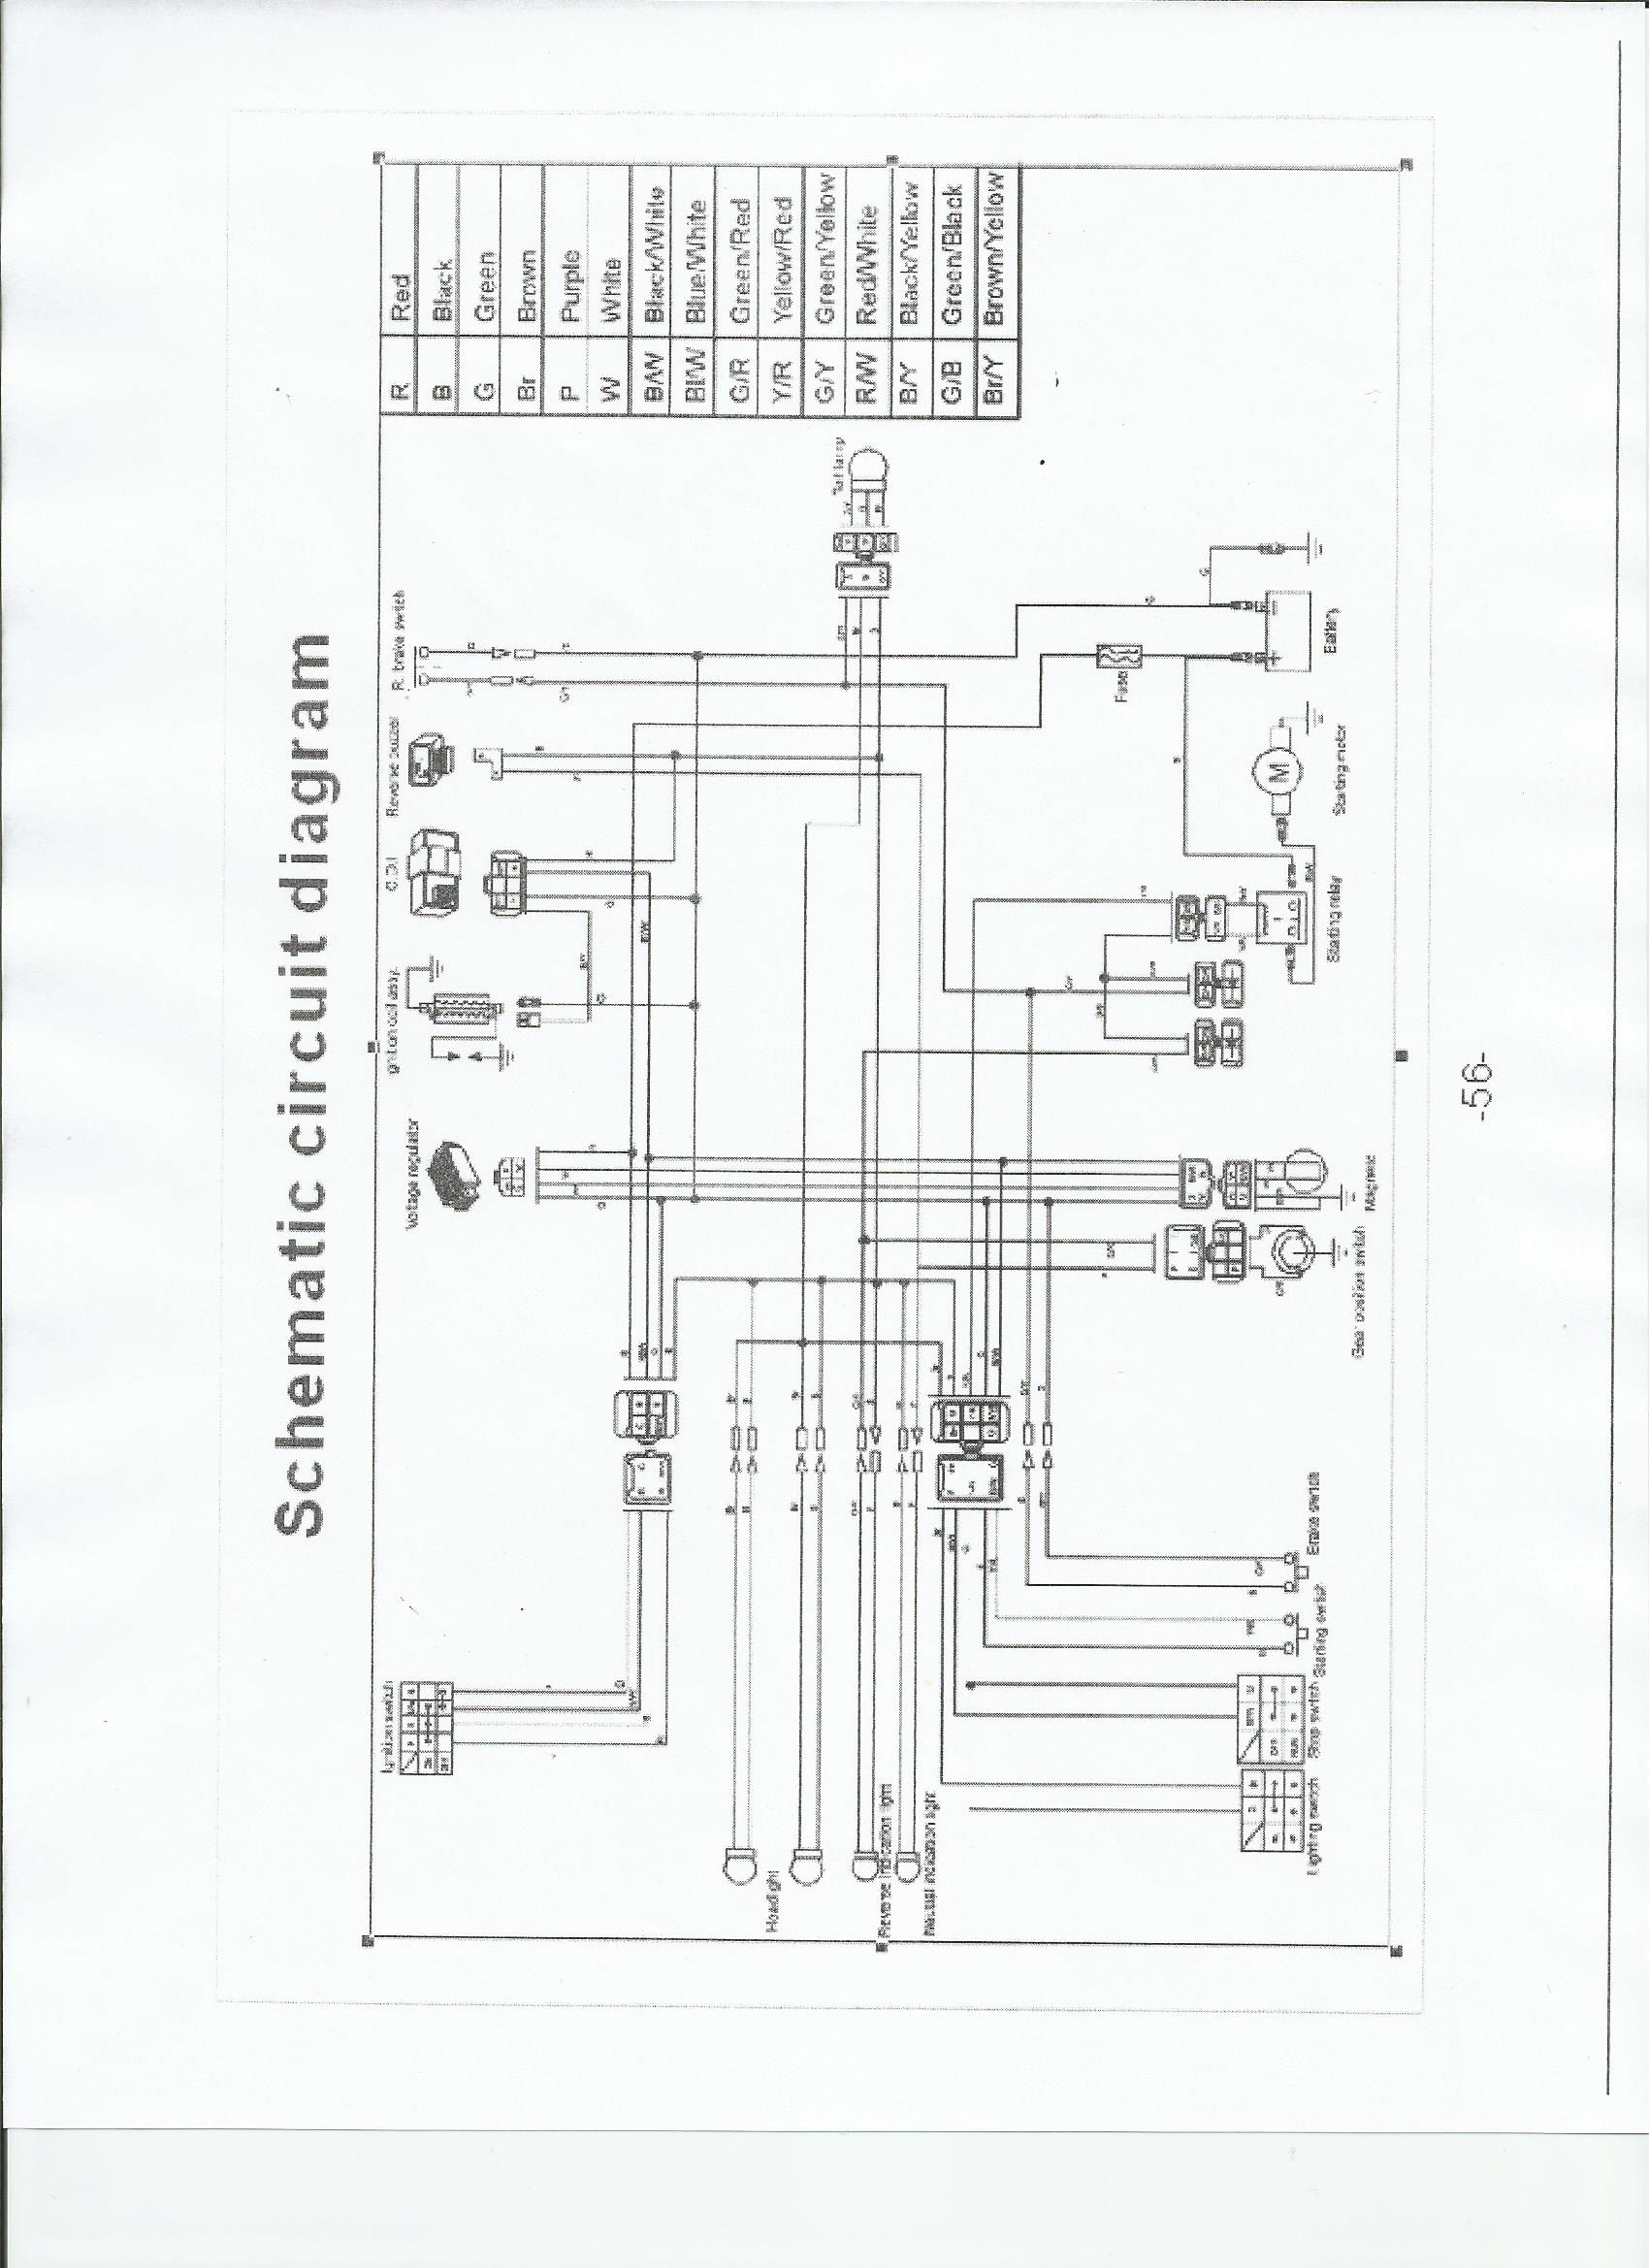 roketa atv wiring diagram download wiring diagramfushin 110cc atv wiring diagram 4 hoeooanh chrisblacksbio info \\u2022tao tao 110cc atv wiring diagram